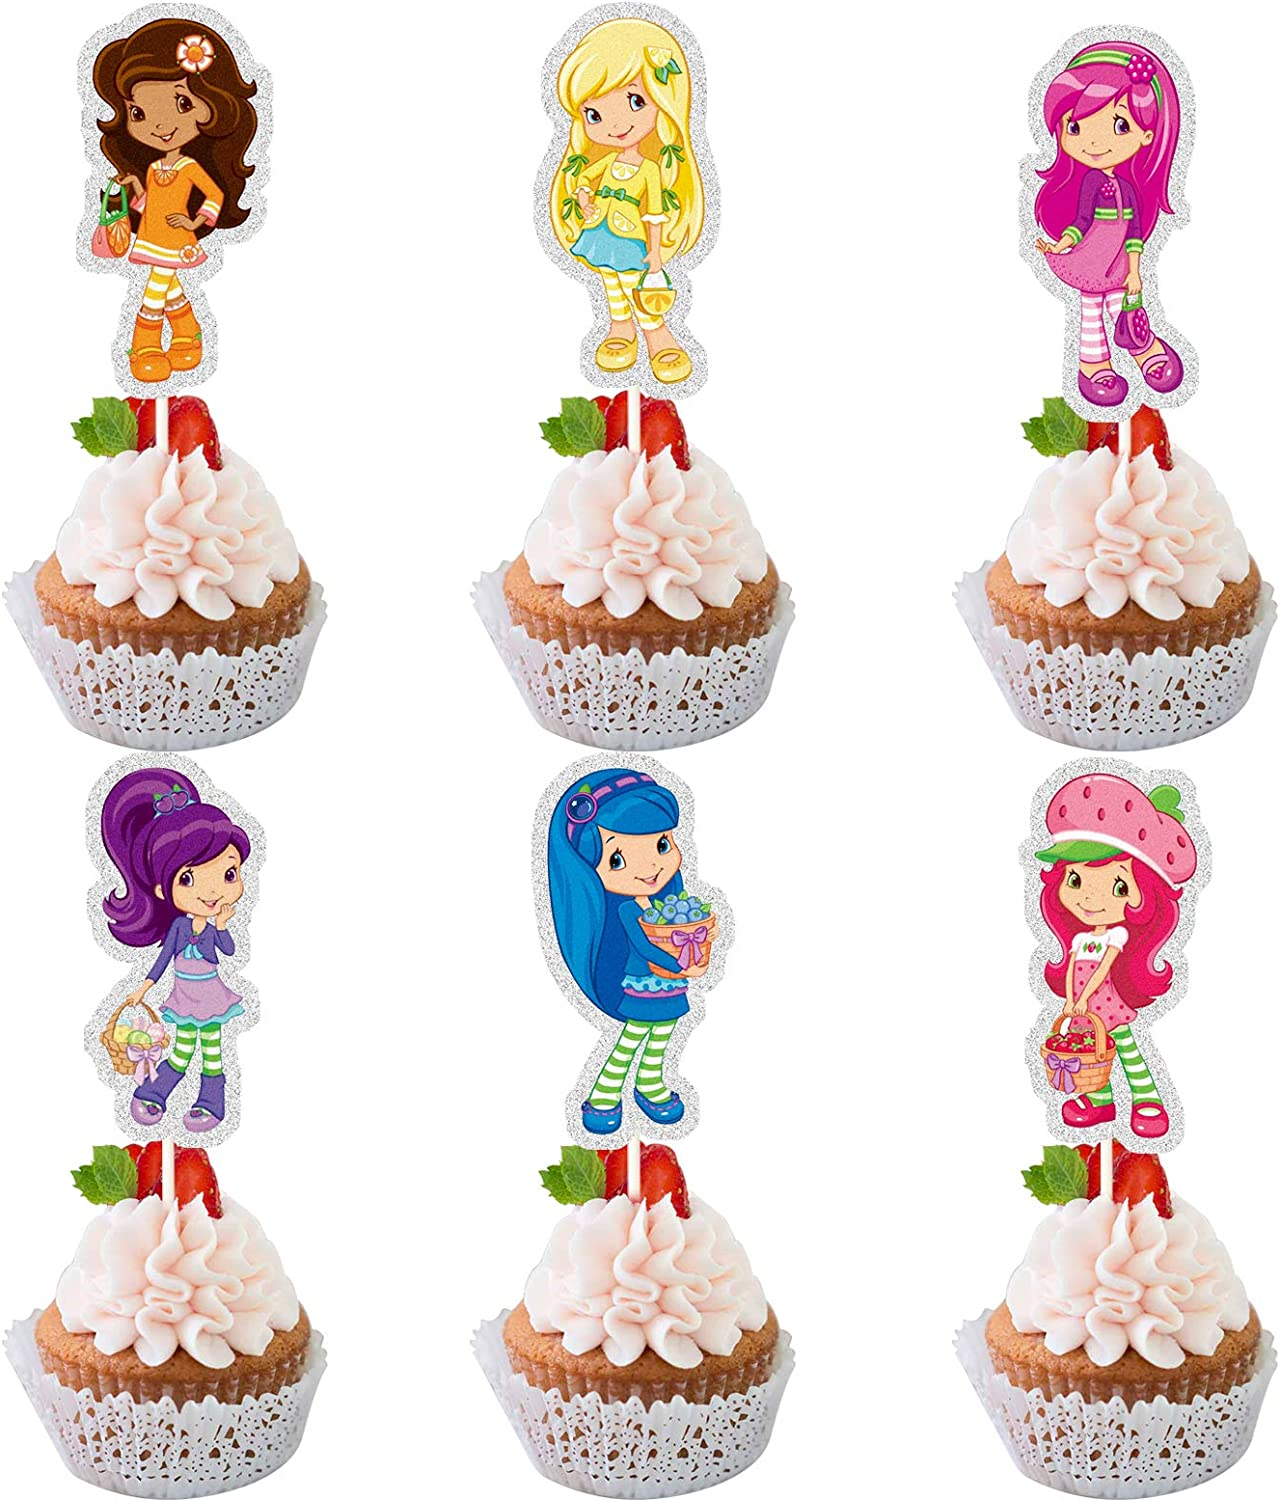 LYNHEVA Glitter Strawberry Shortcake Cupcake Topper, Berry Bitty Adventures Theme Birthday Party Suppliers, Fruits Girls Cupcake Decoration, Girls Bday Party Favor